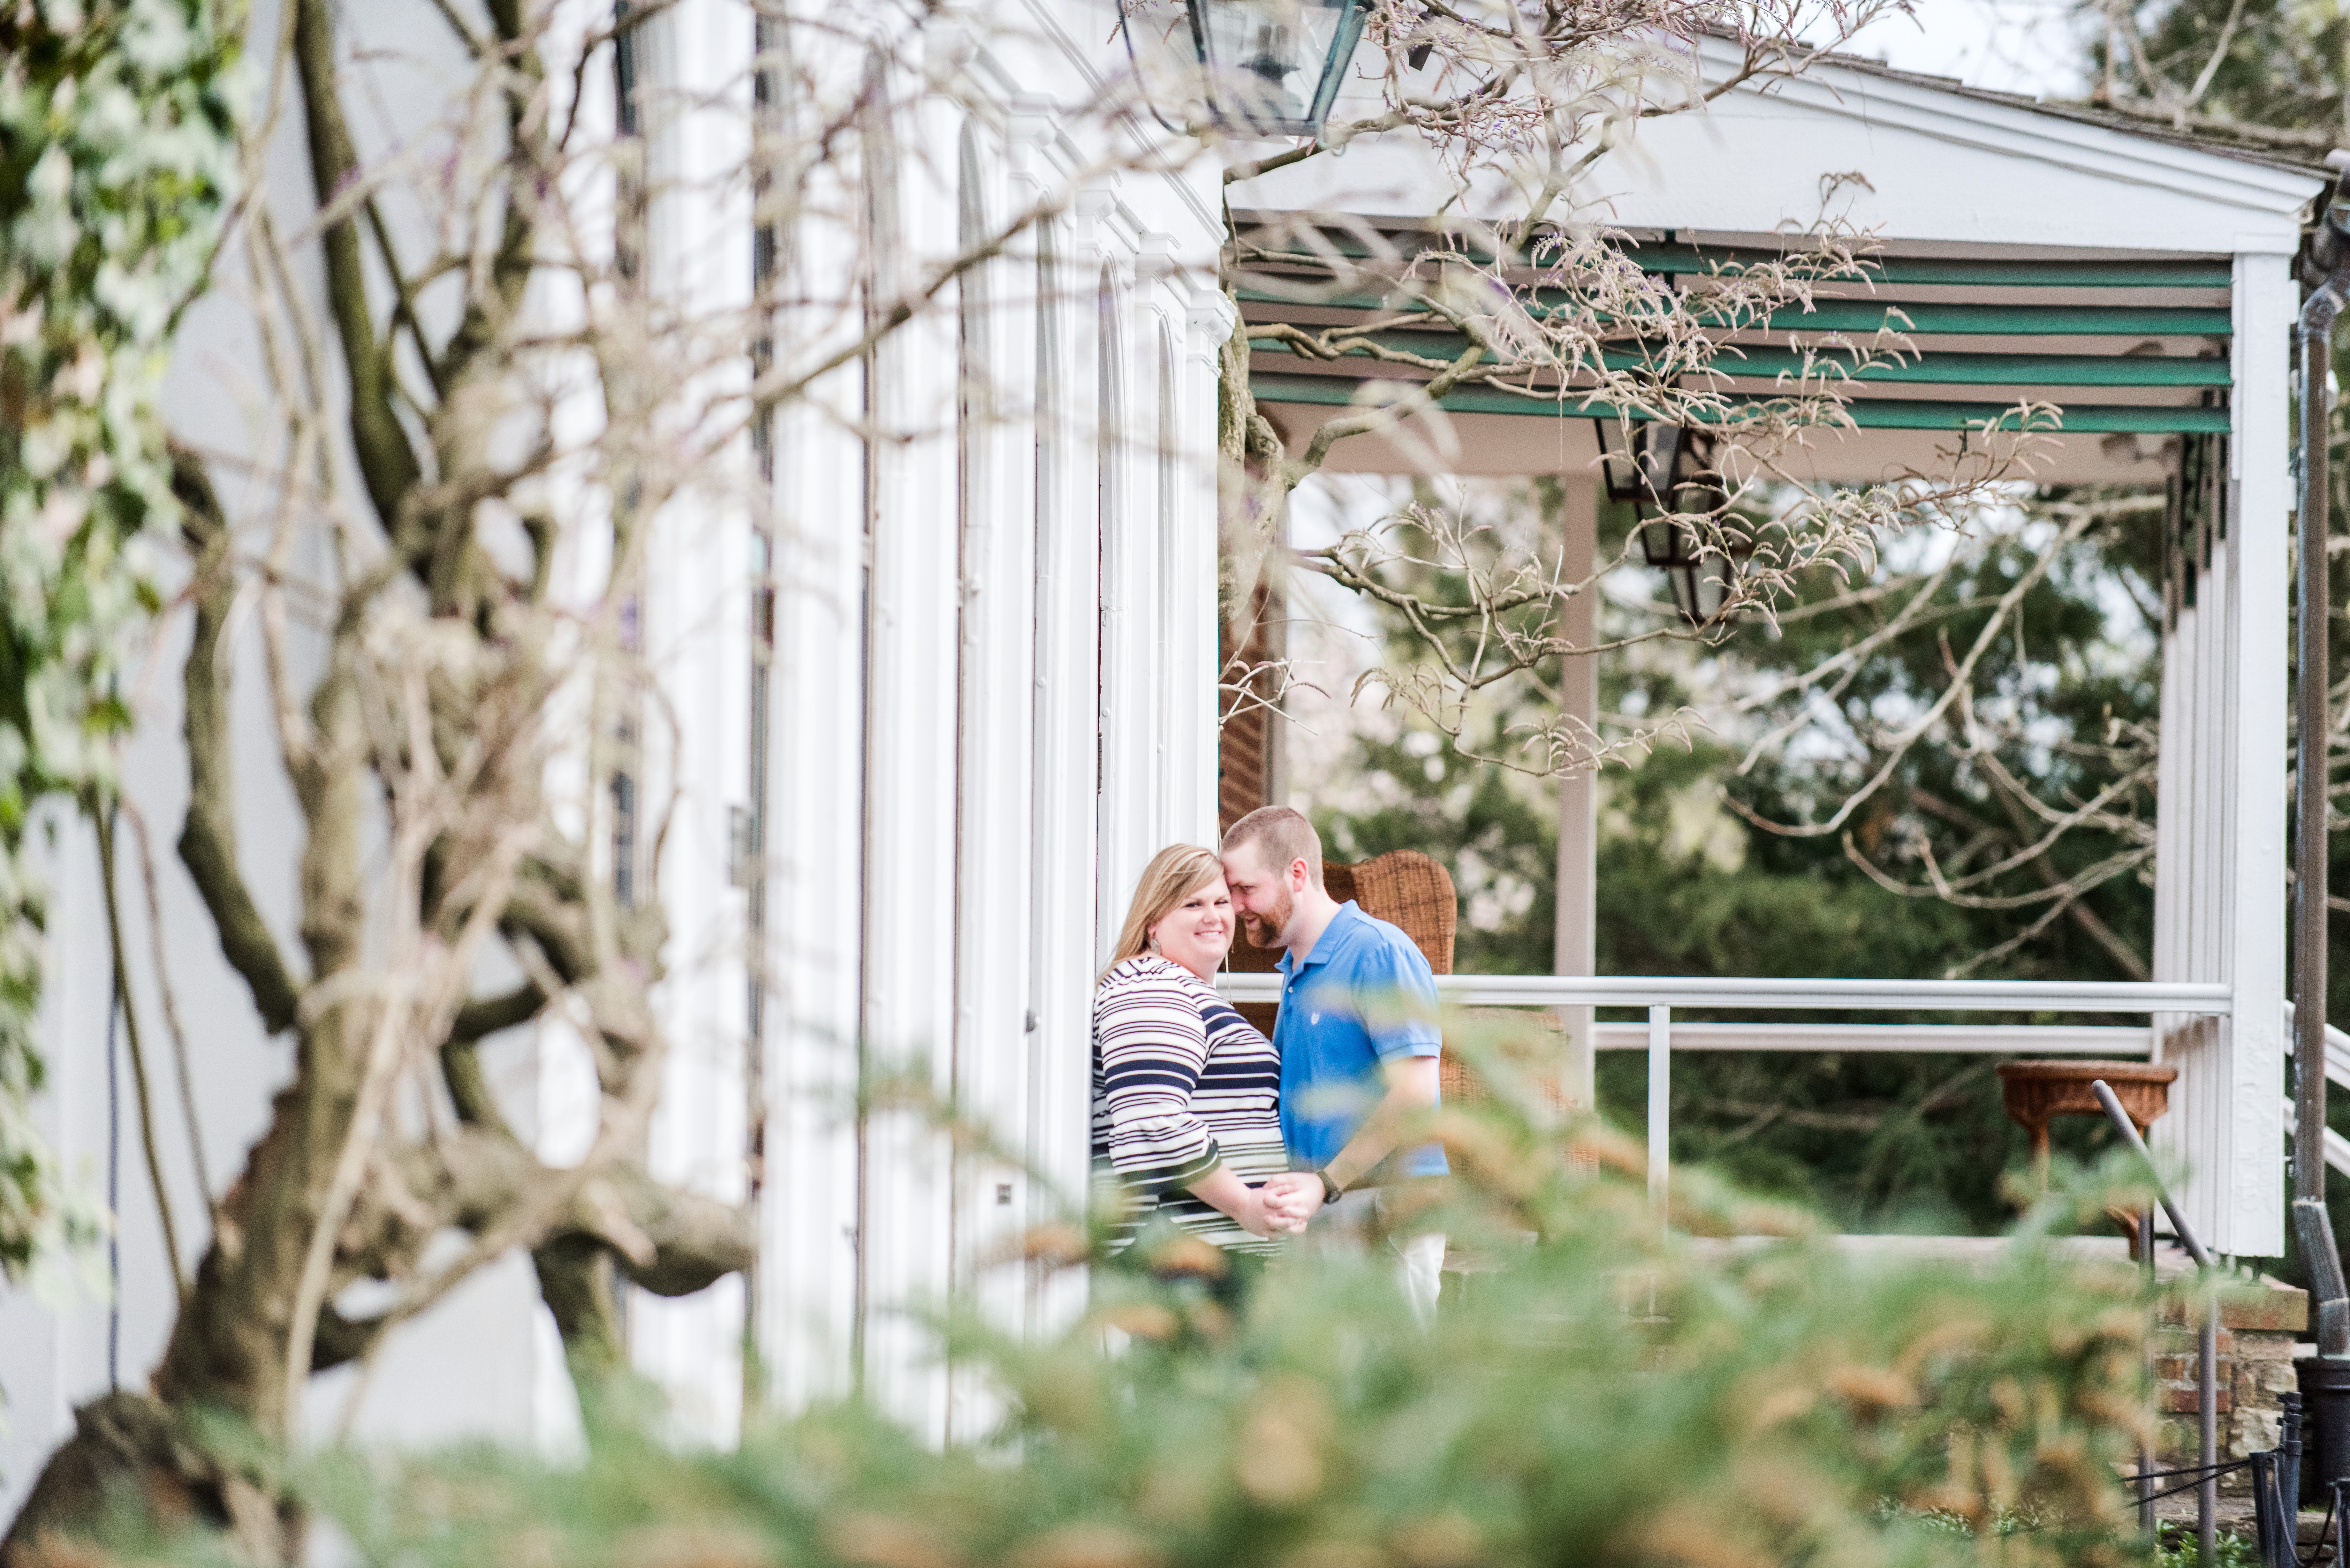 20180522-Longwood-Gardens-Engagement-Photographer-Pennsylvania-Andrea-Krout-Photography-56